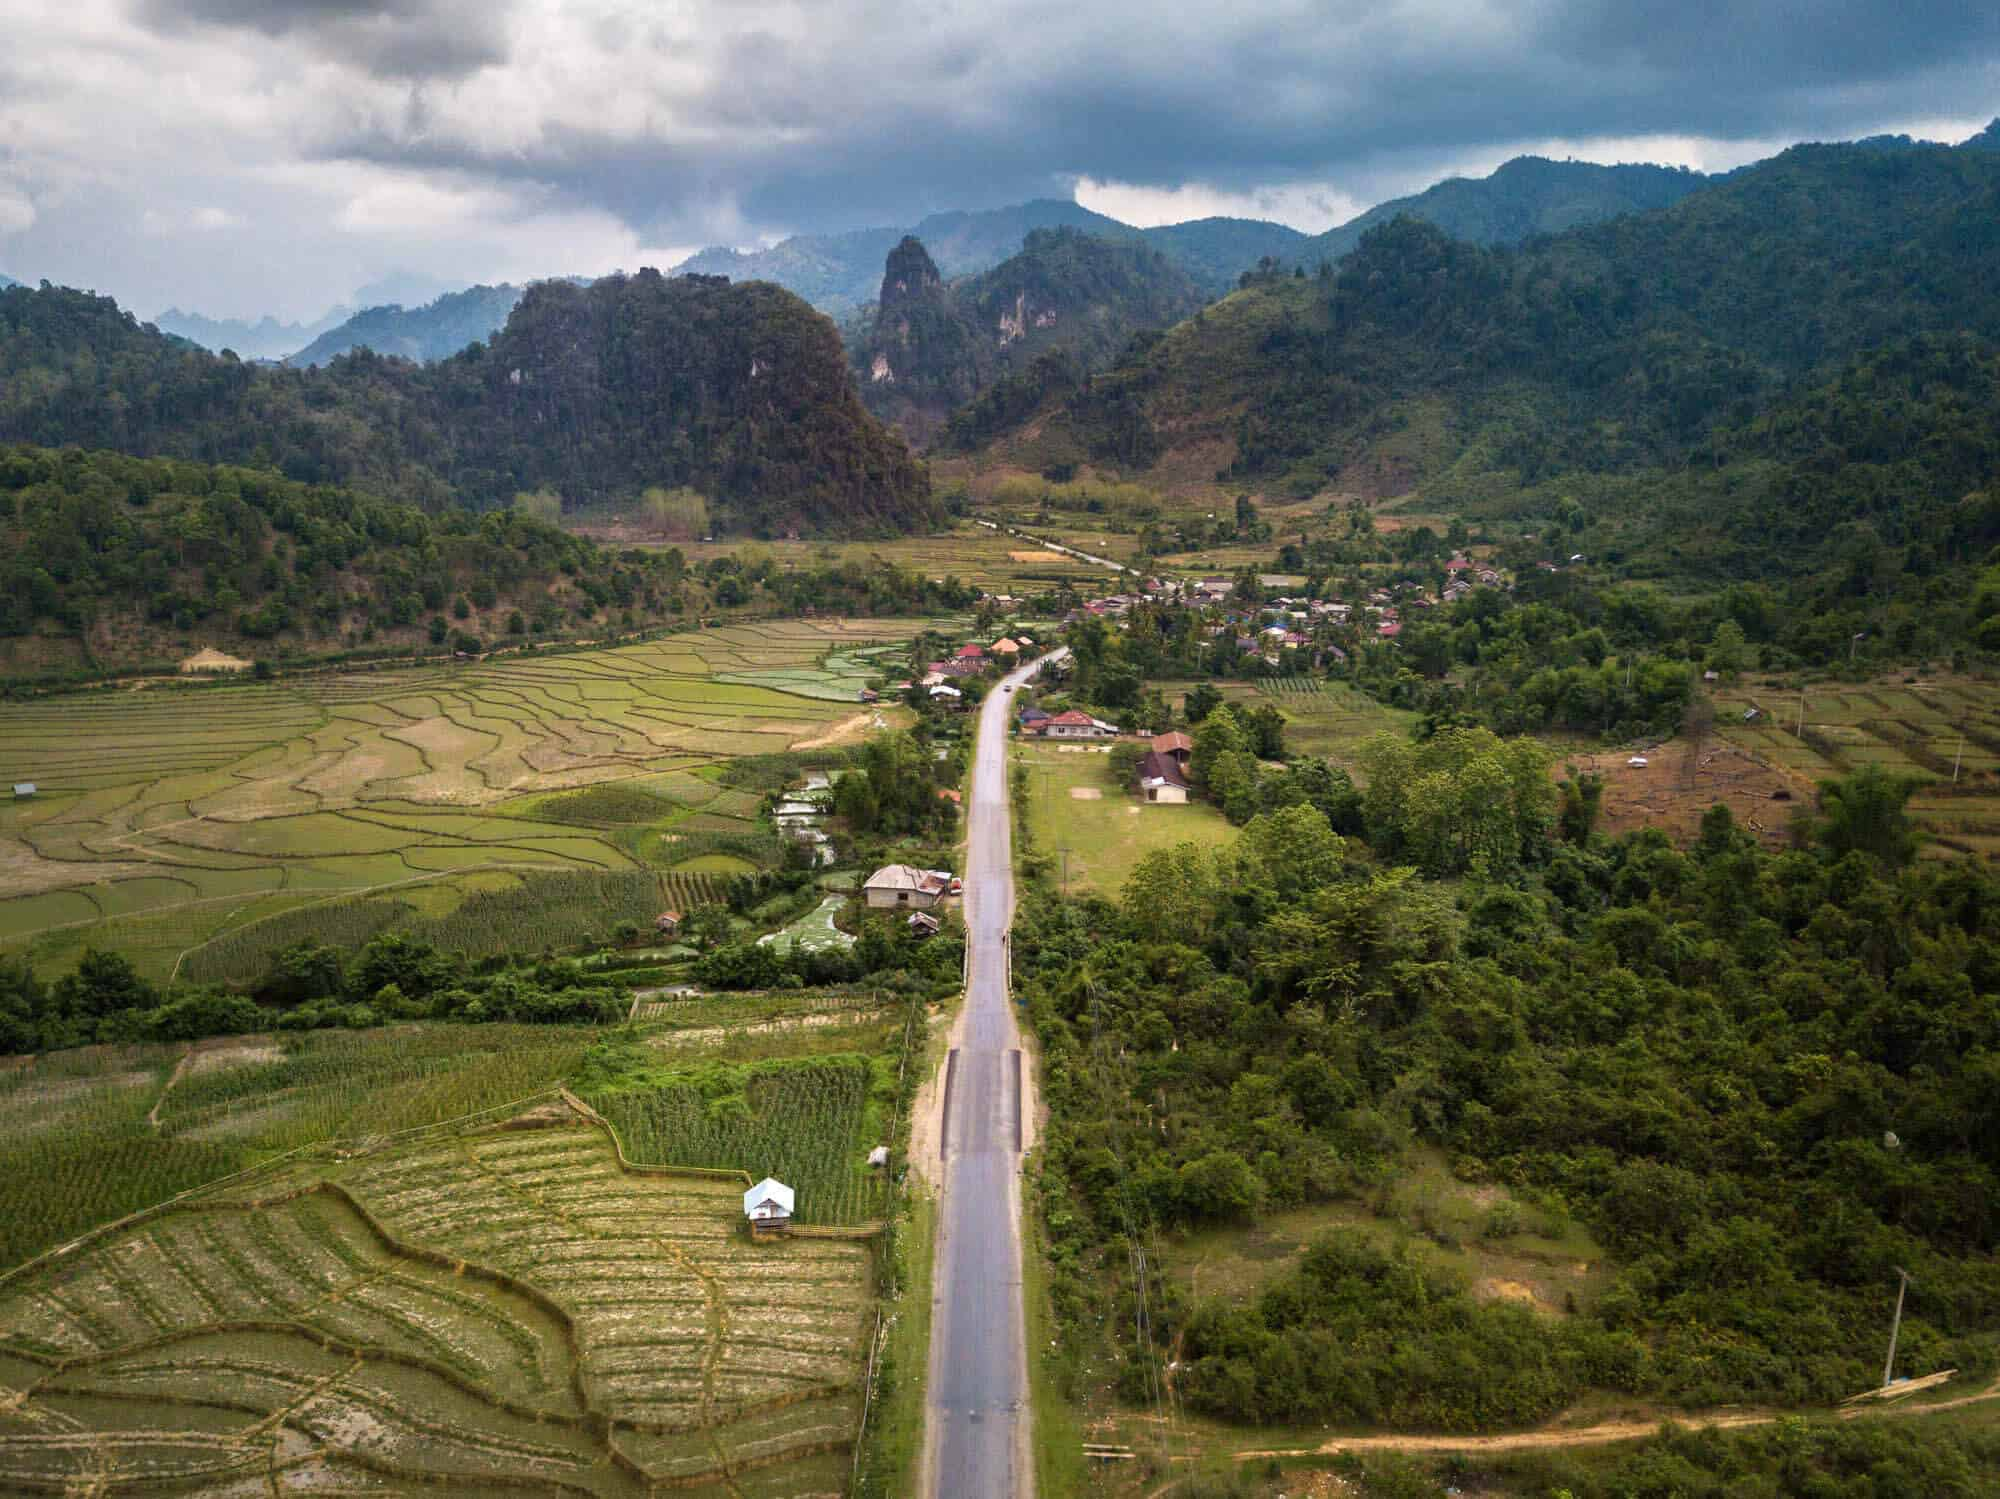 An aerial view of Route 4 connecting Luang Prabang and Vang Vieng in northern Laos